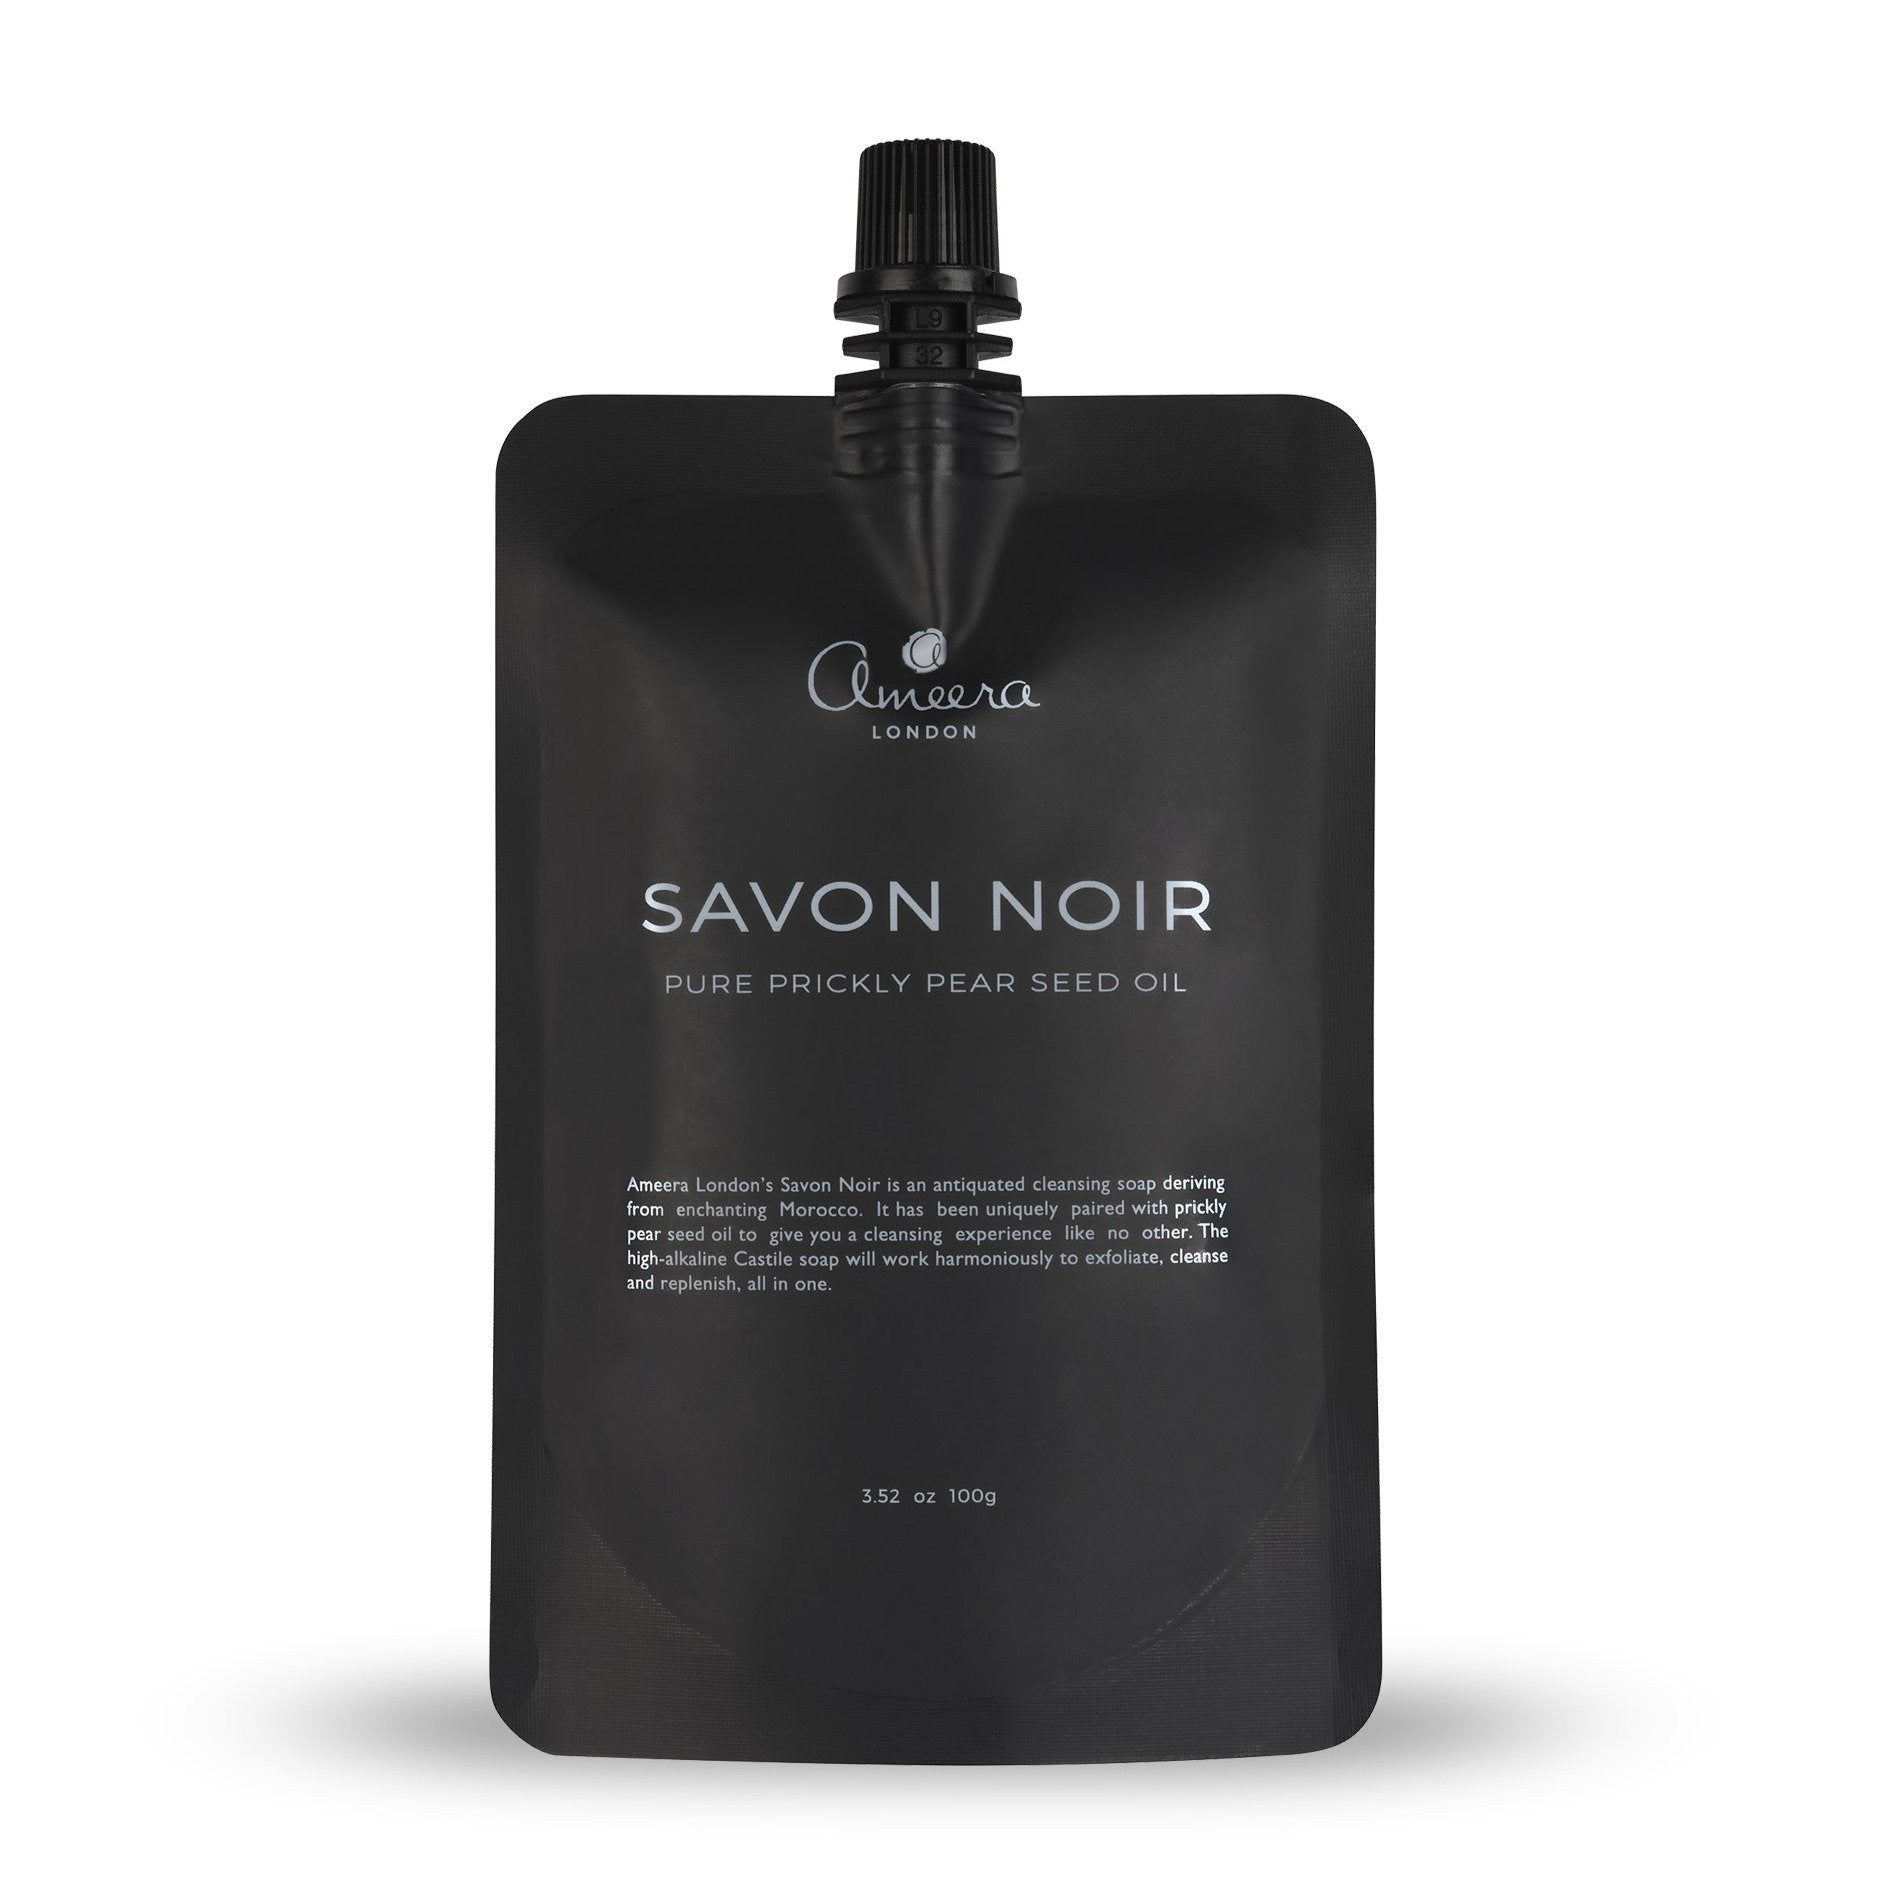 An antiquated, organic cleansing soap deriving from enchanting Morocco, our Savon Noir has been uniquely paired with prickly pear seeds to give you a cleansing experience like no other. This high-alkaline castile soap will work harmoniously to exfoliate, cleanse and replenish, all in one.  Containing a high concentration of Amino Acids, Omega 9, Omega 6 and Vitamins A, B, E, and K, use this cleansing miracle worker a few times a week to tackle lacklustre skin and give you fresh, radiate, glowing skin.